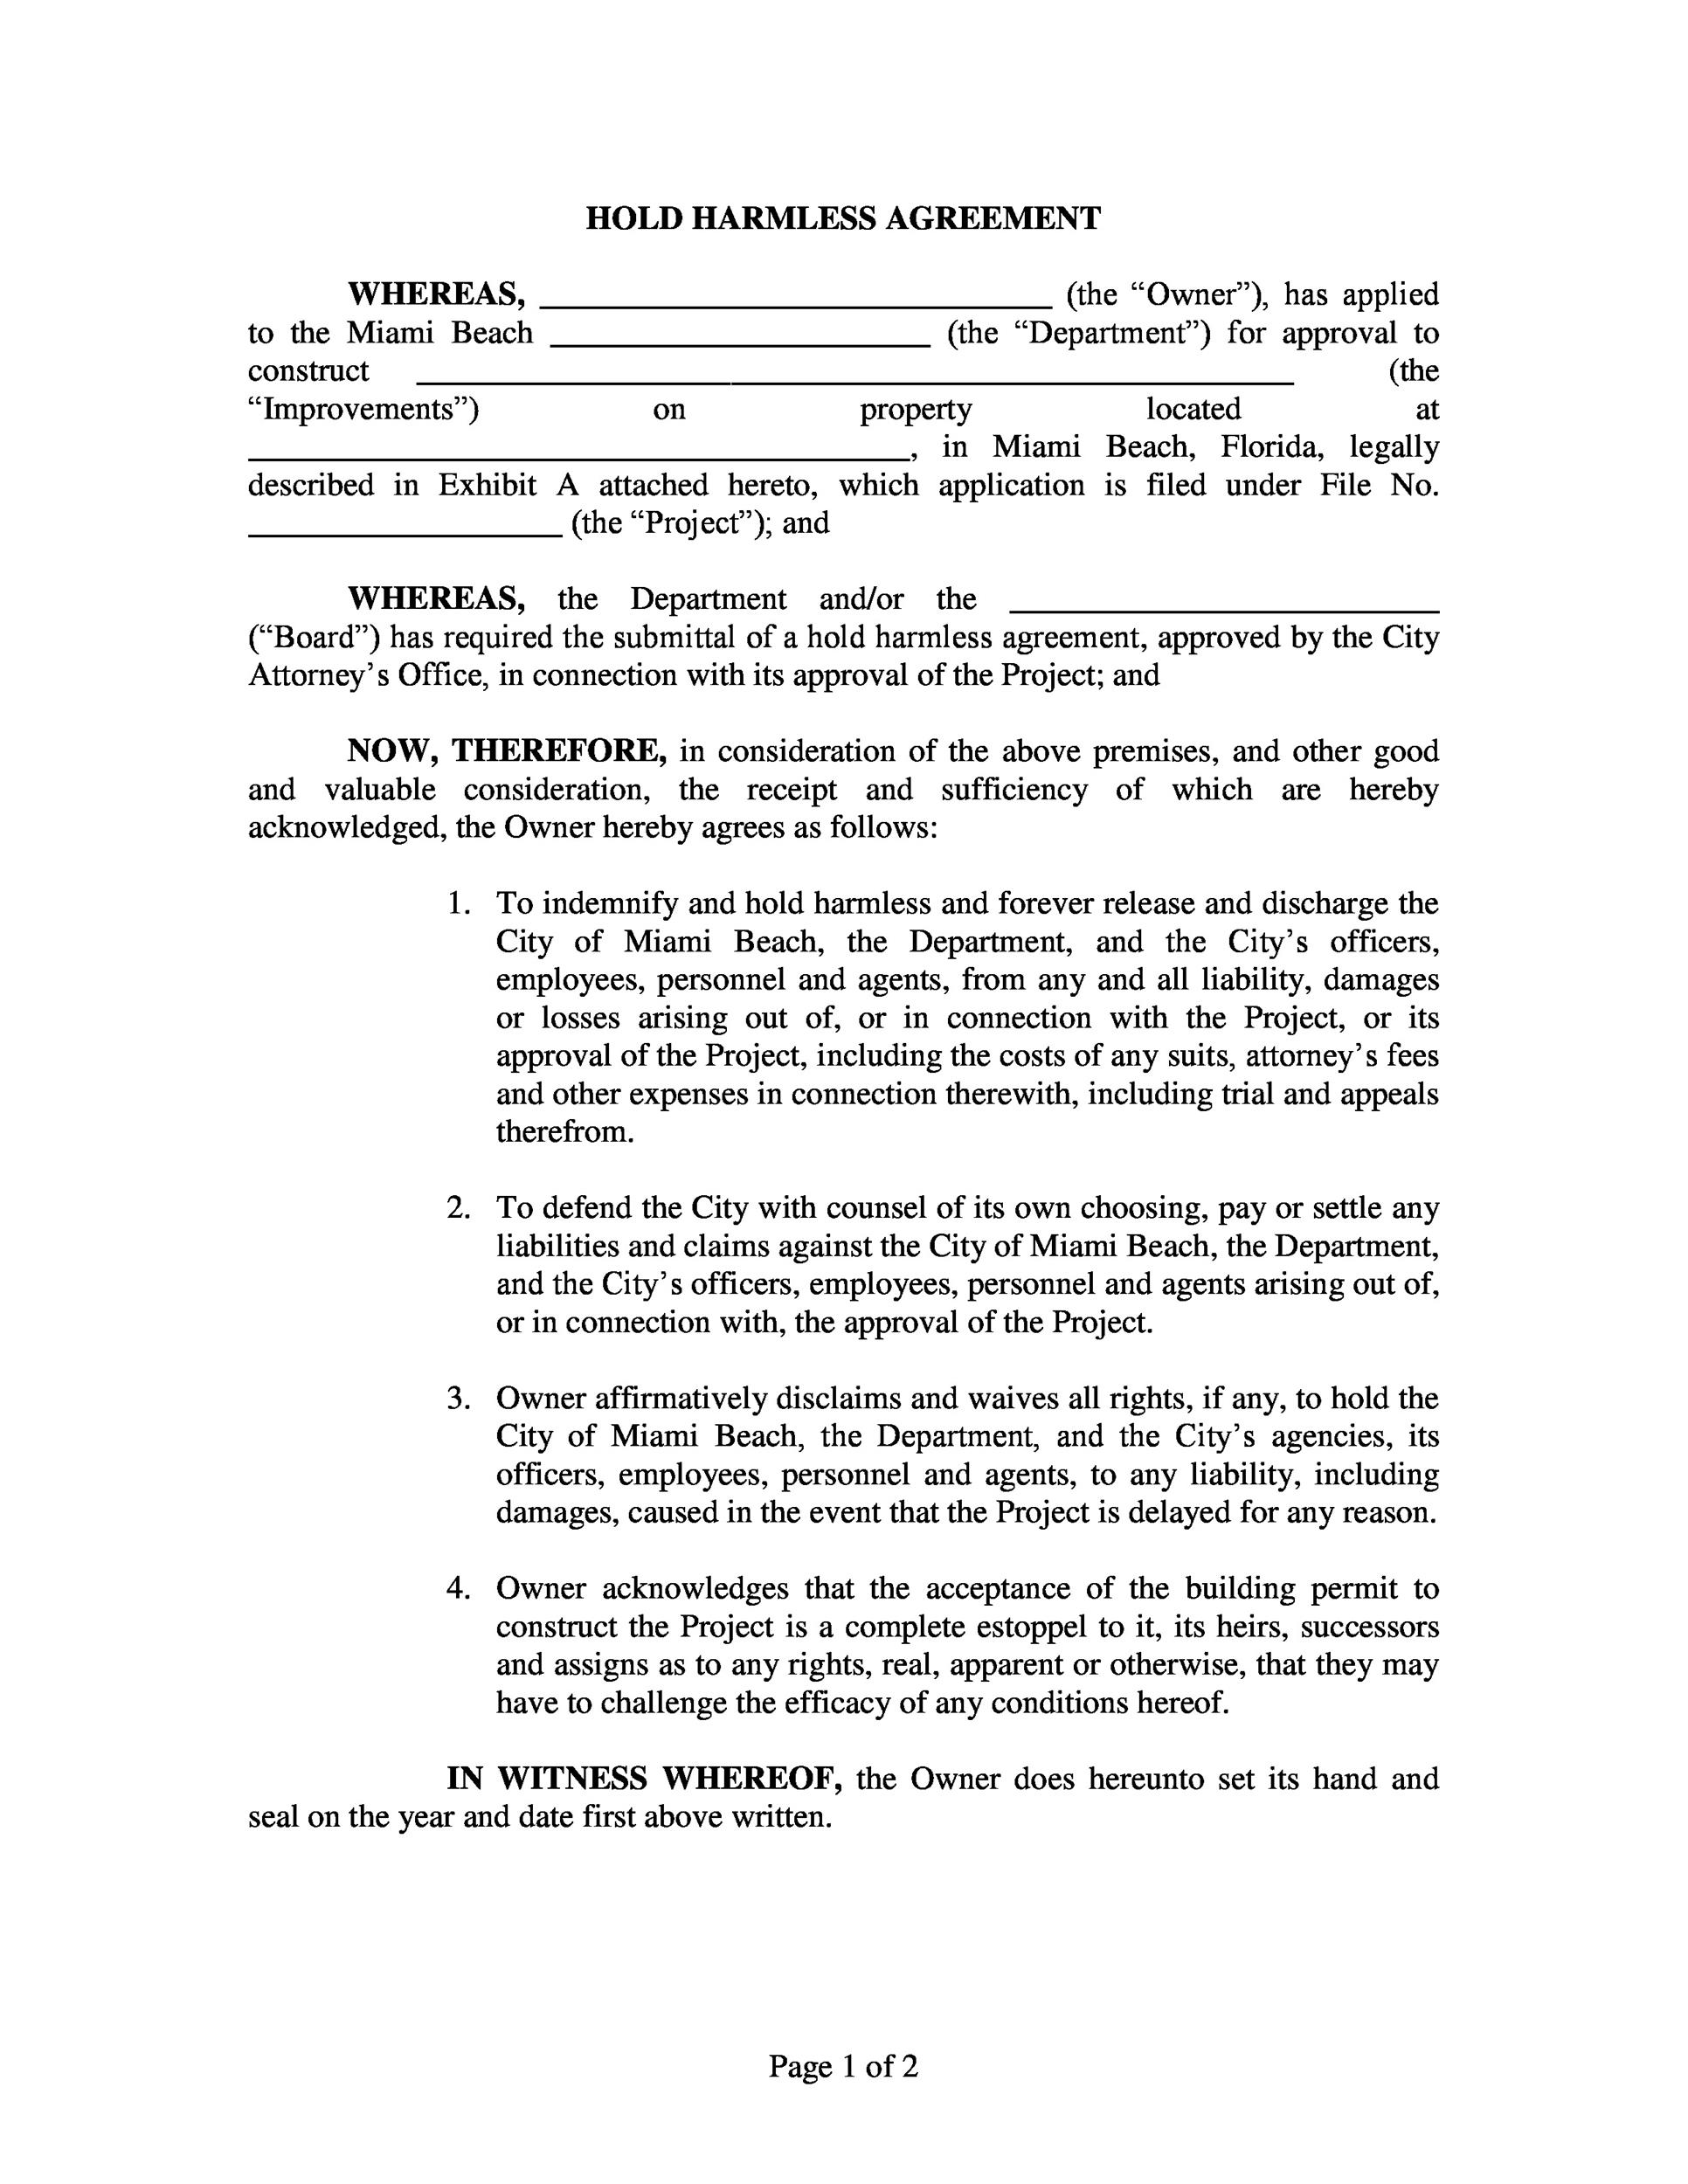 Indemnity Agreement Template additionally sales agency – Deed of Indemnity